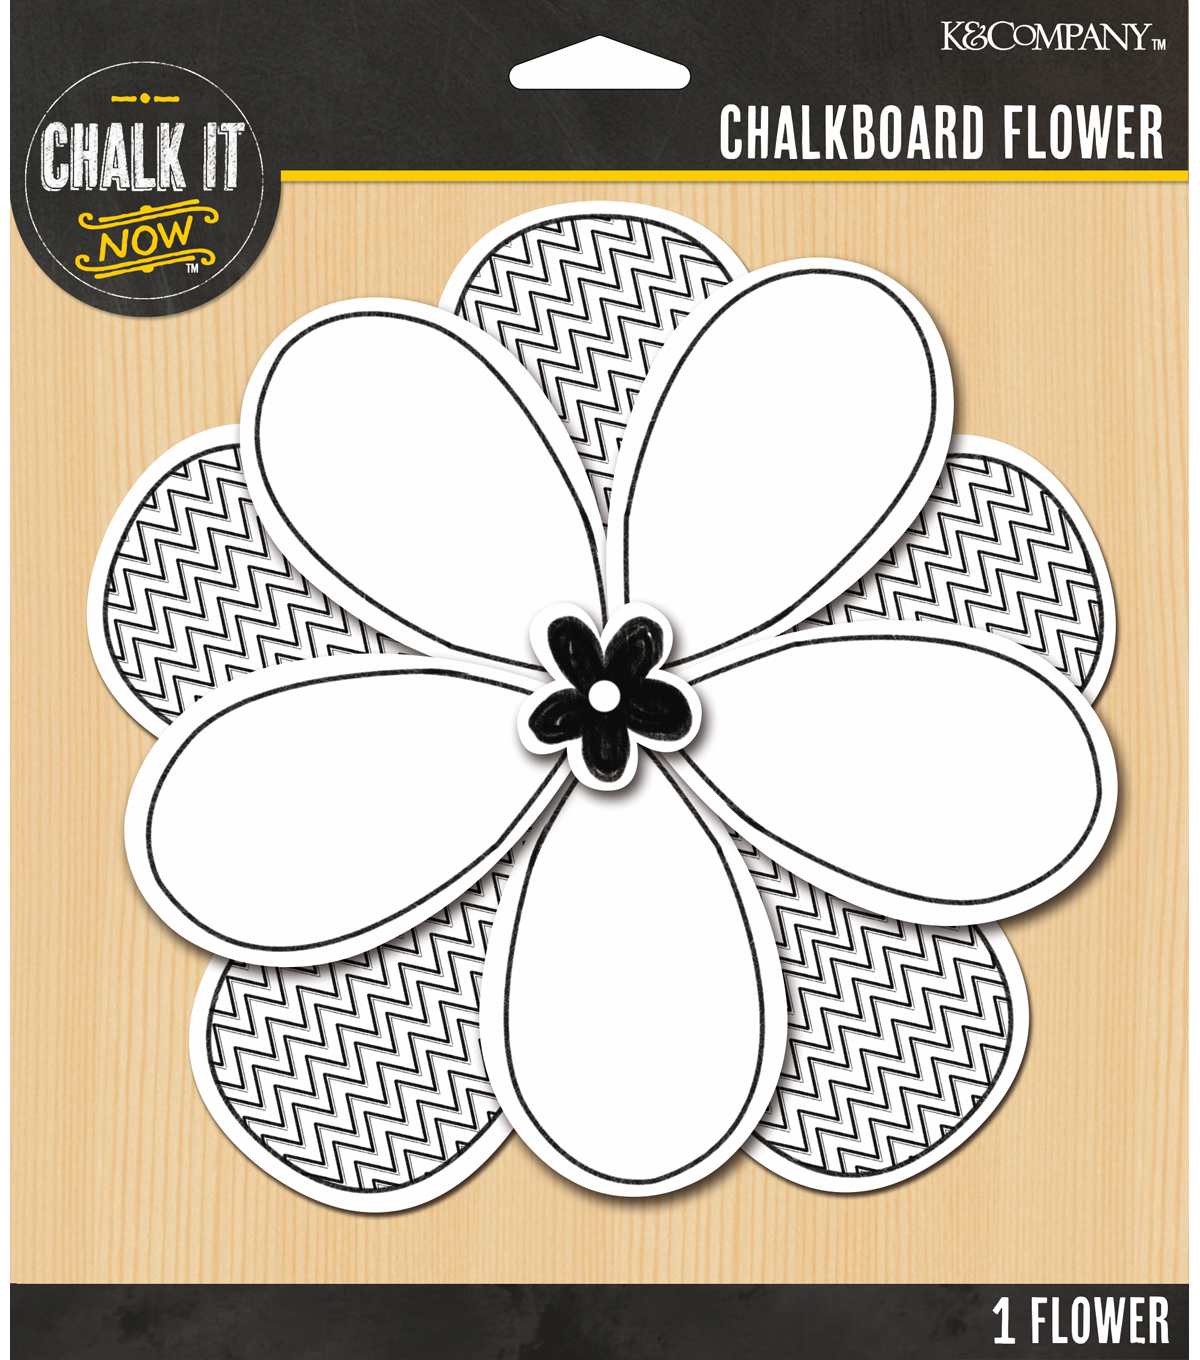 Chalk it Now - White Jumbo Chalkboard Flower